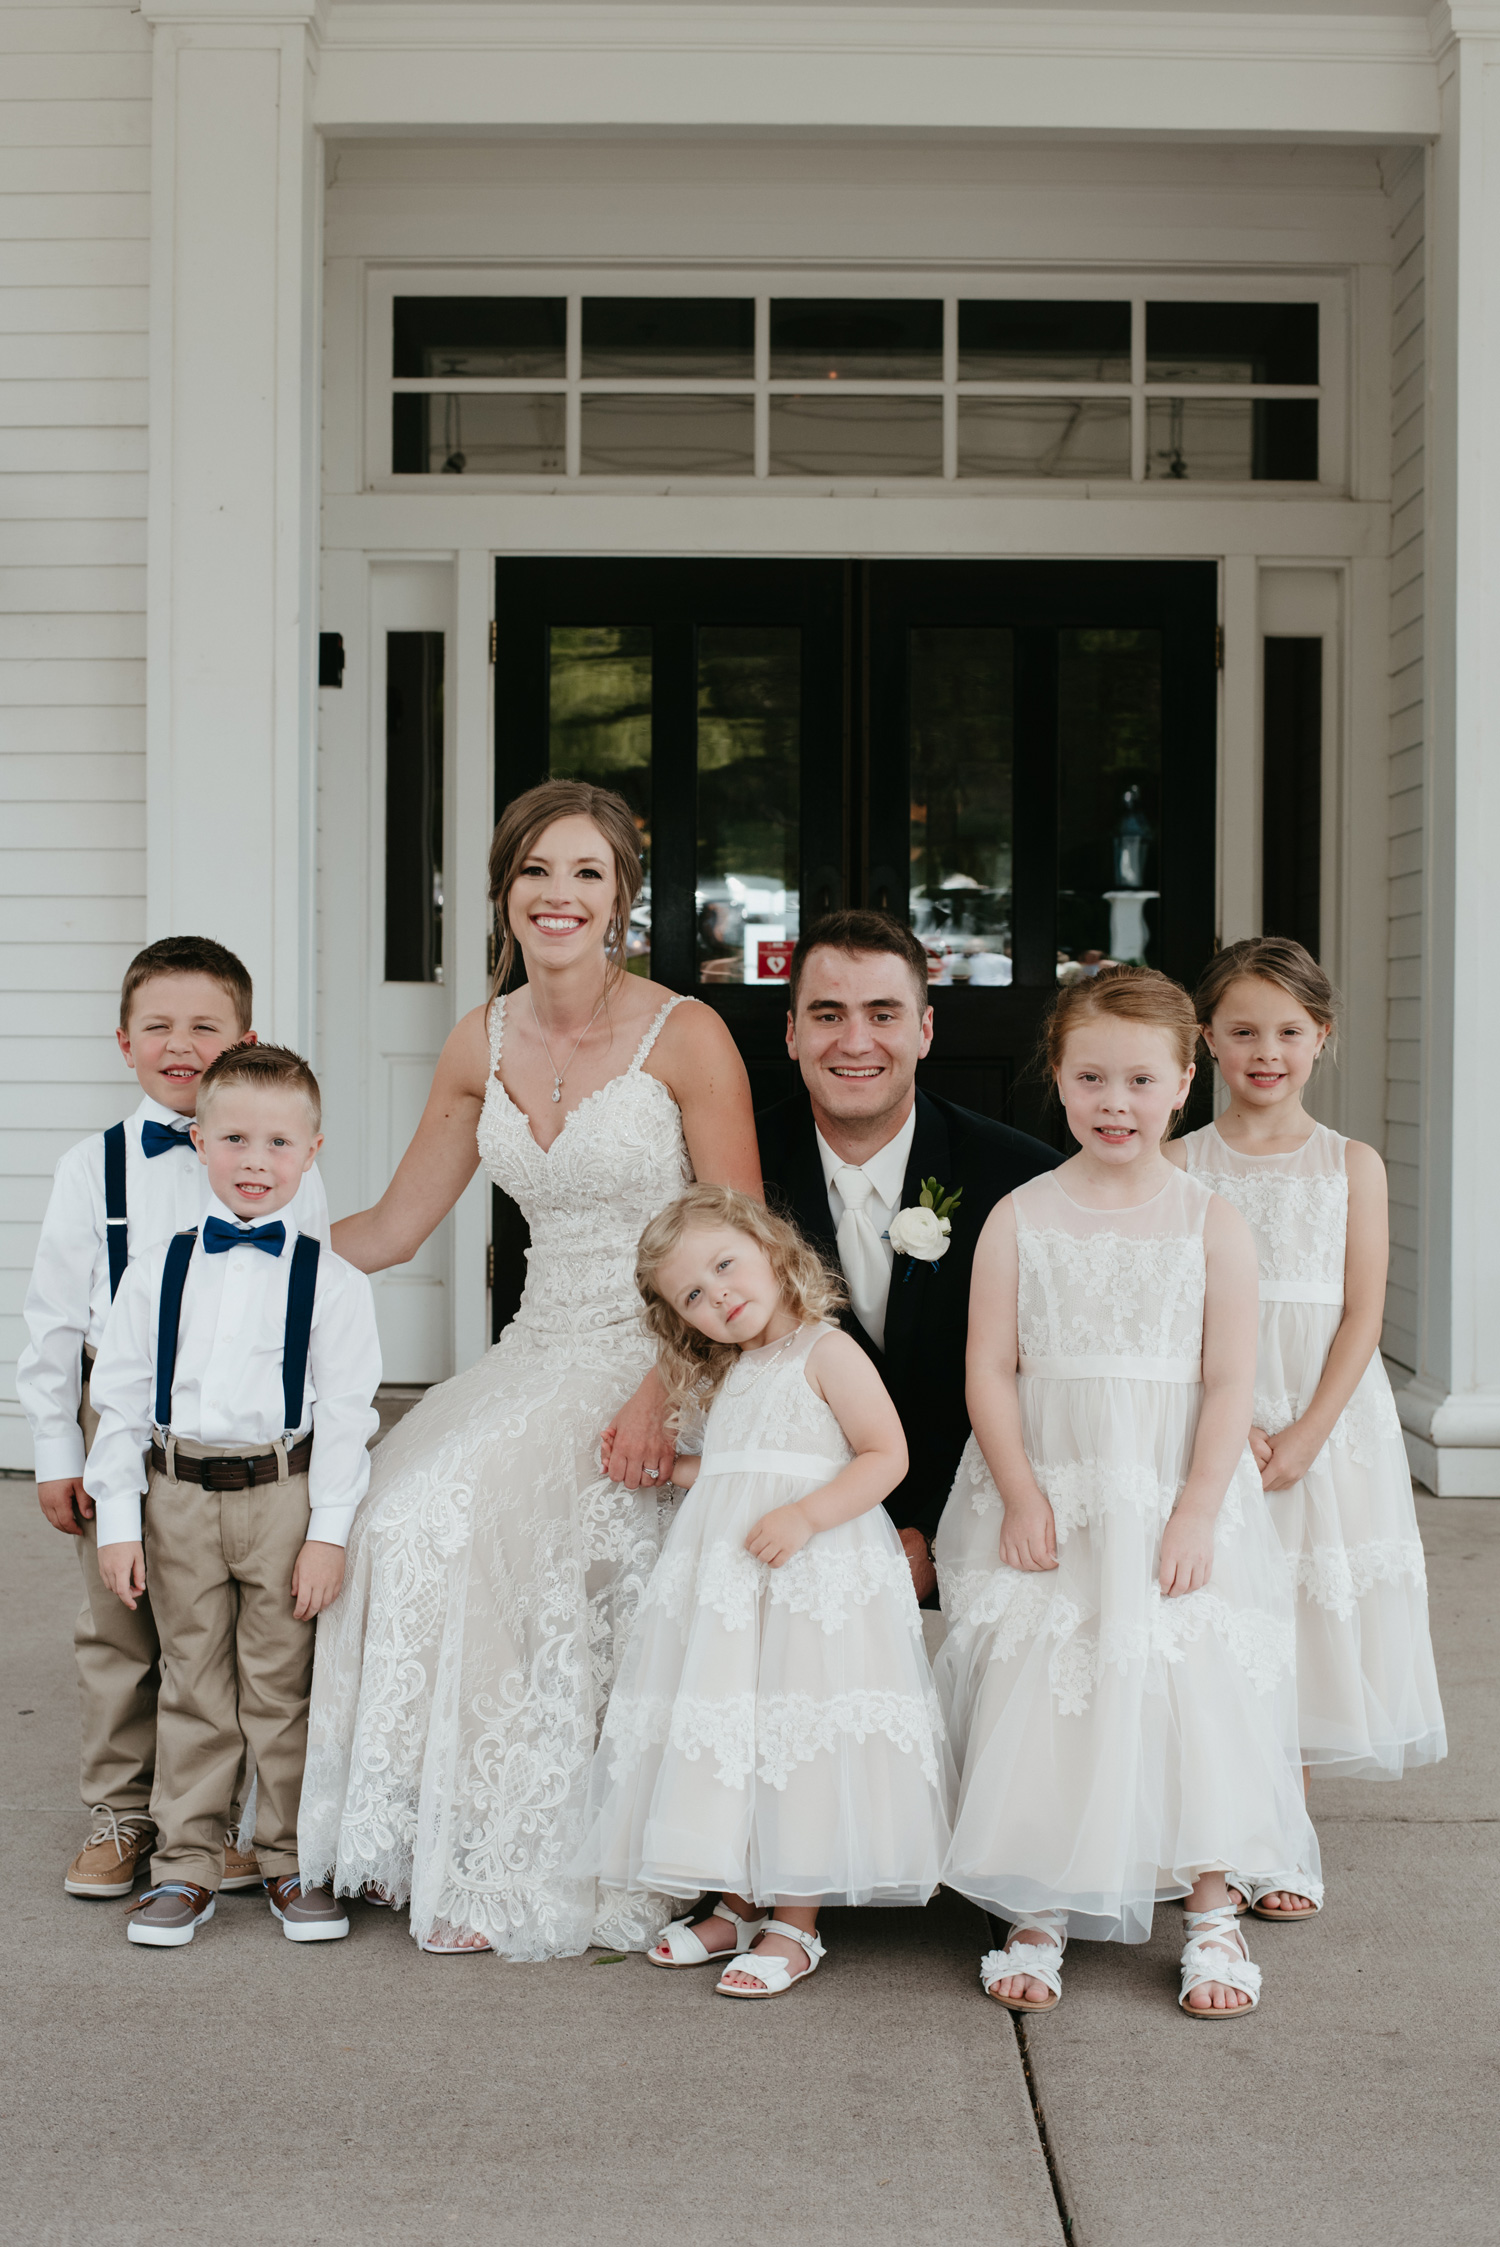 Bride, groom, flower girls and ring bearers